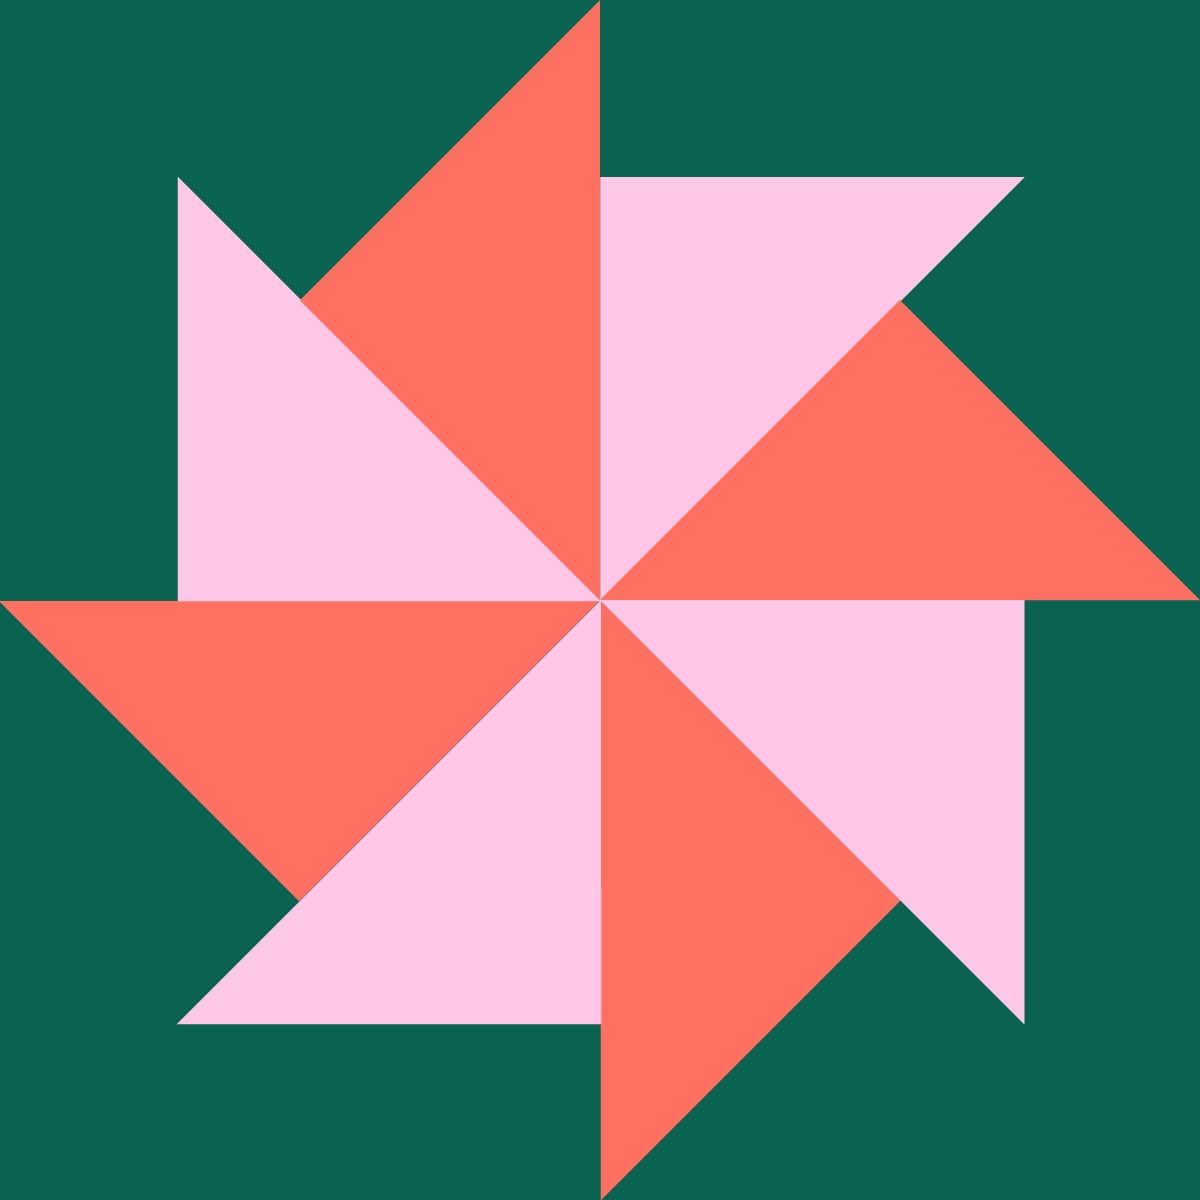 pink windmill on green background